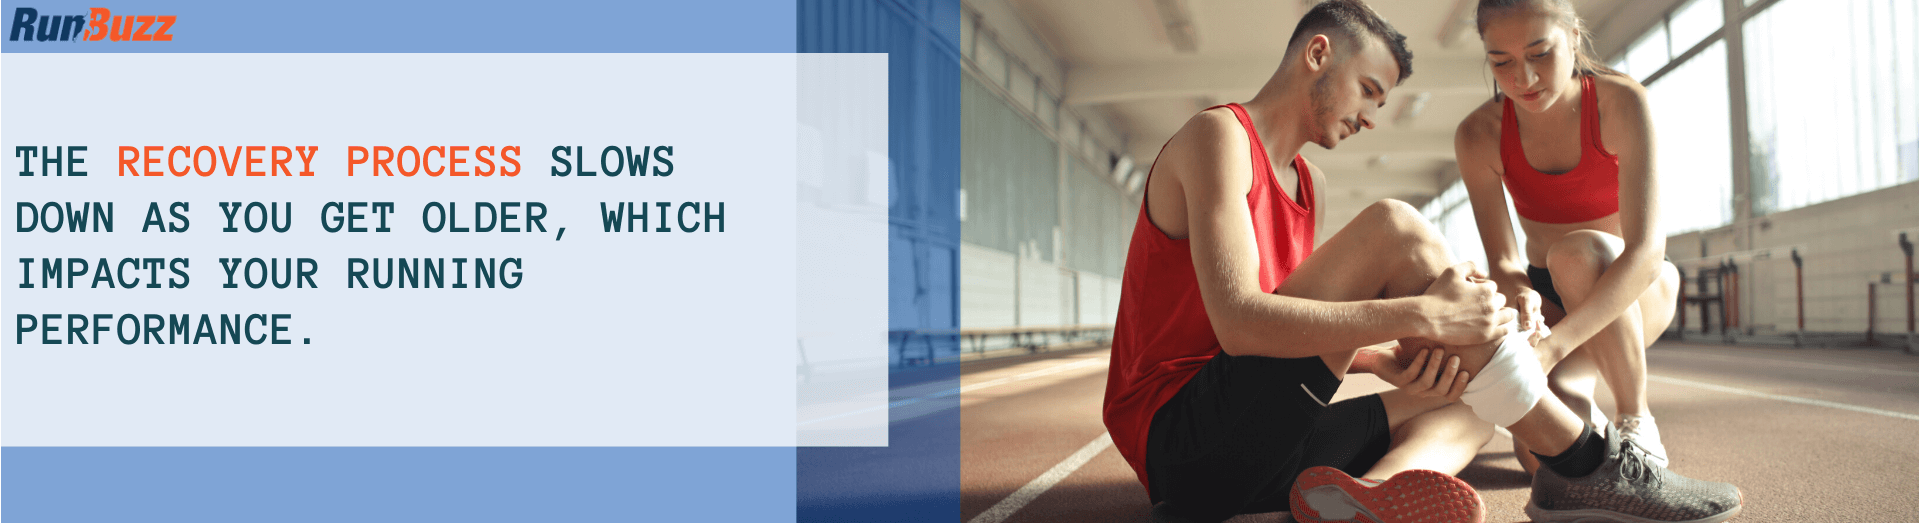 The-recovery-process-slows-down-as-you-get-older-which-impacts-your-running-performance